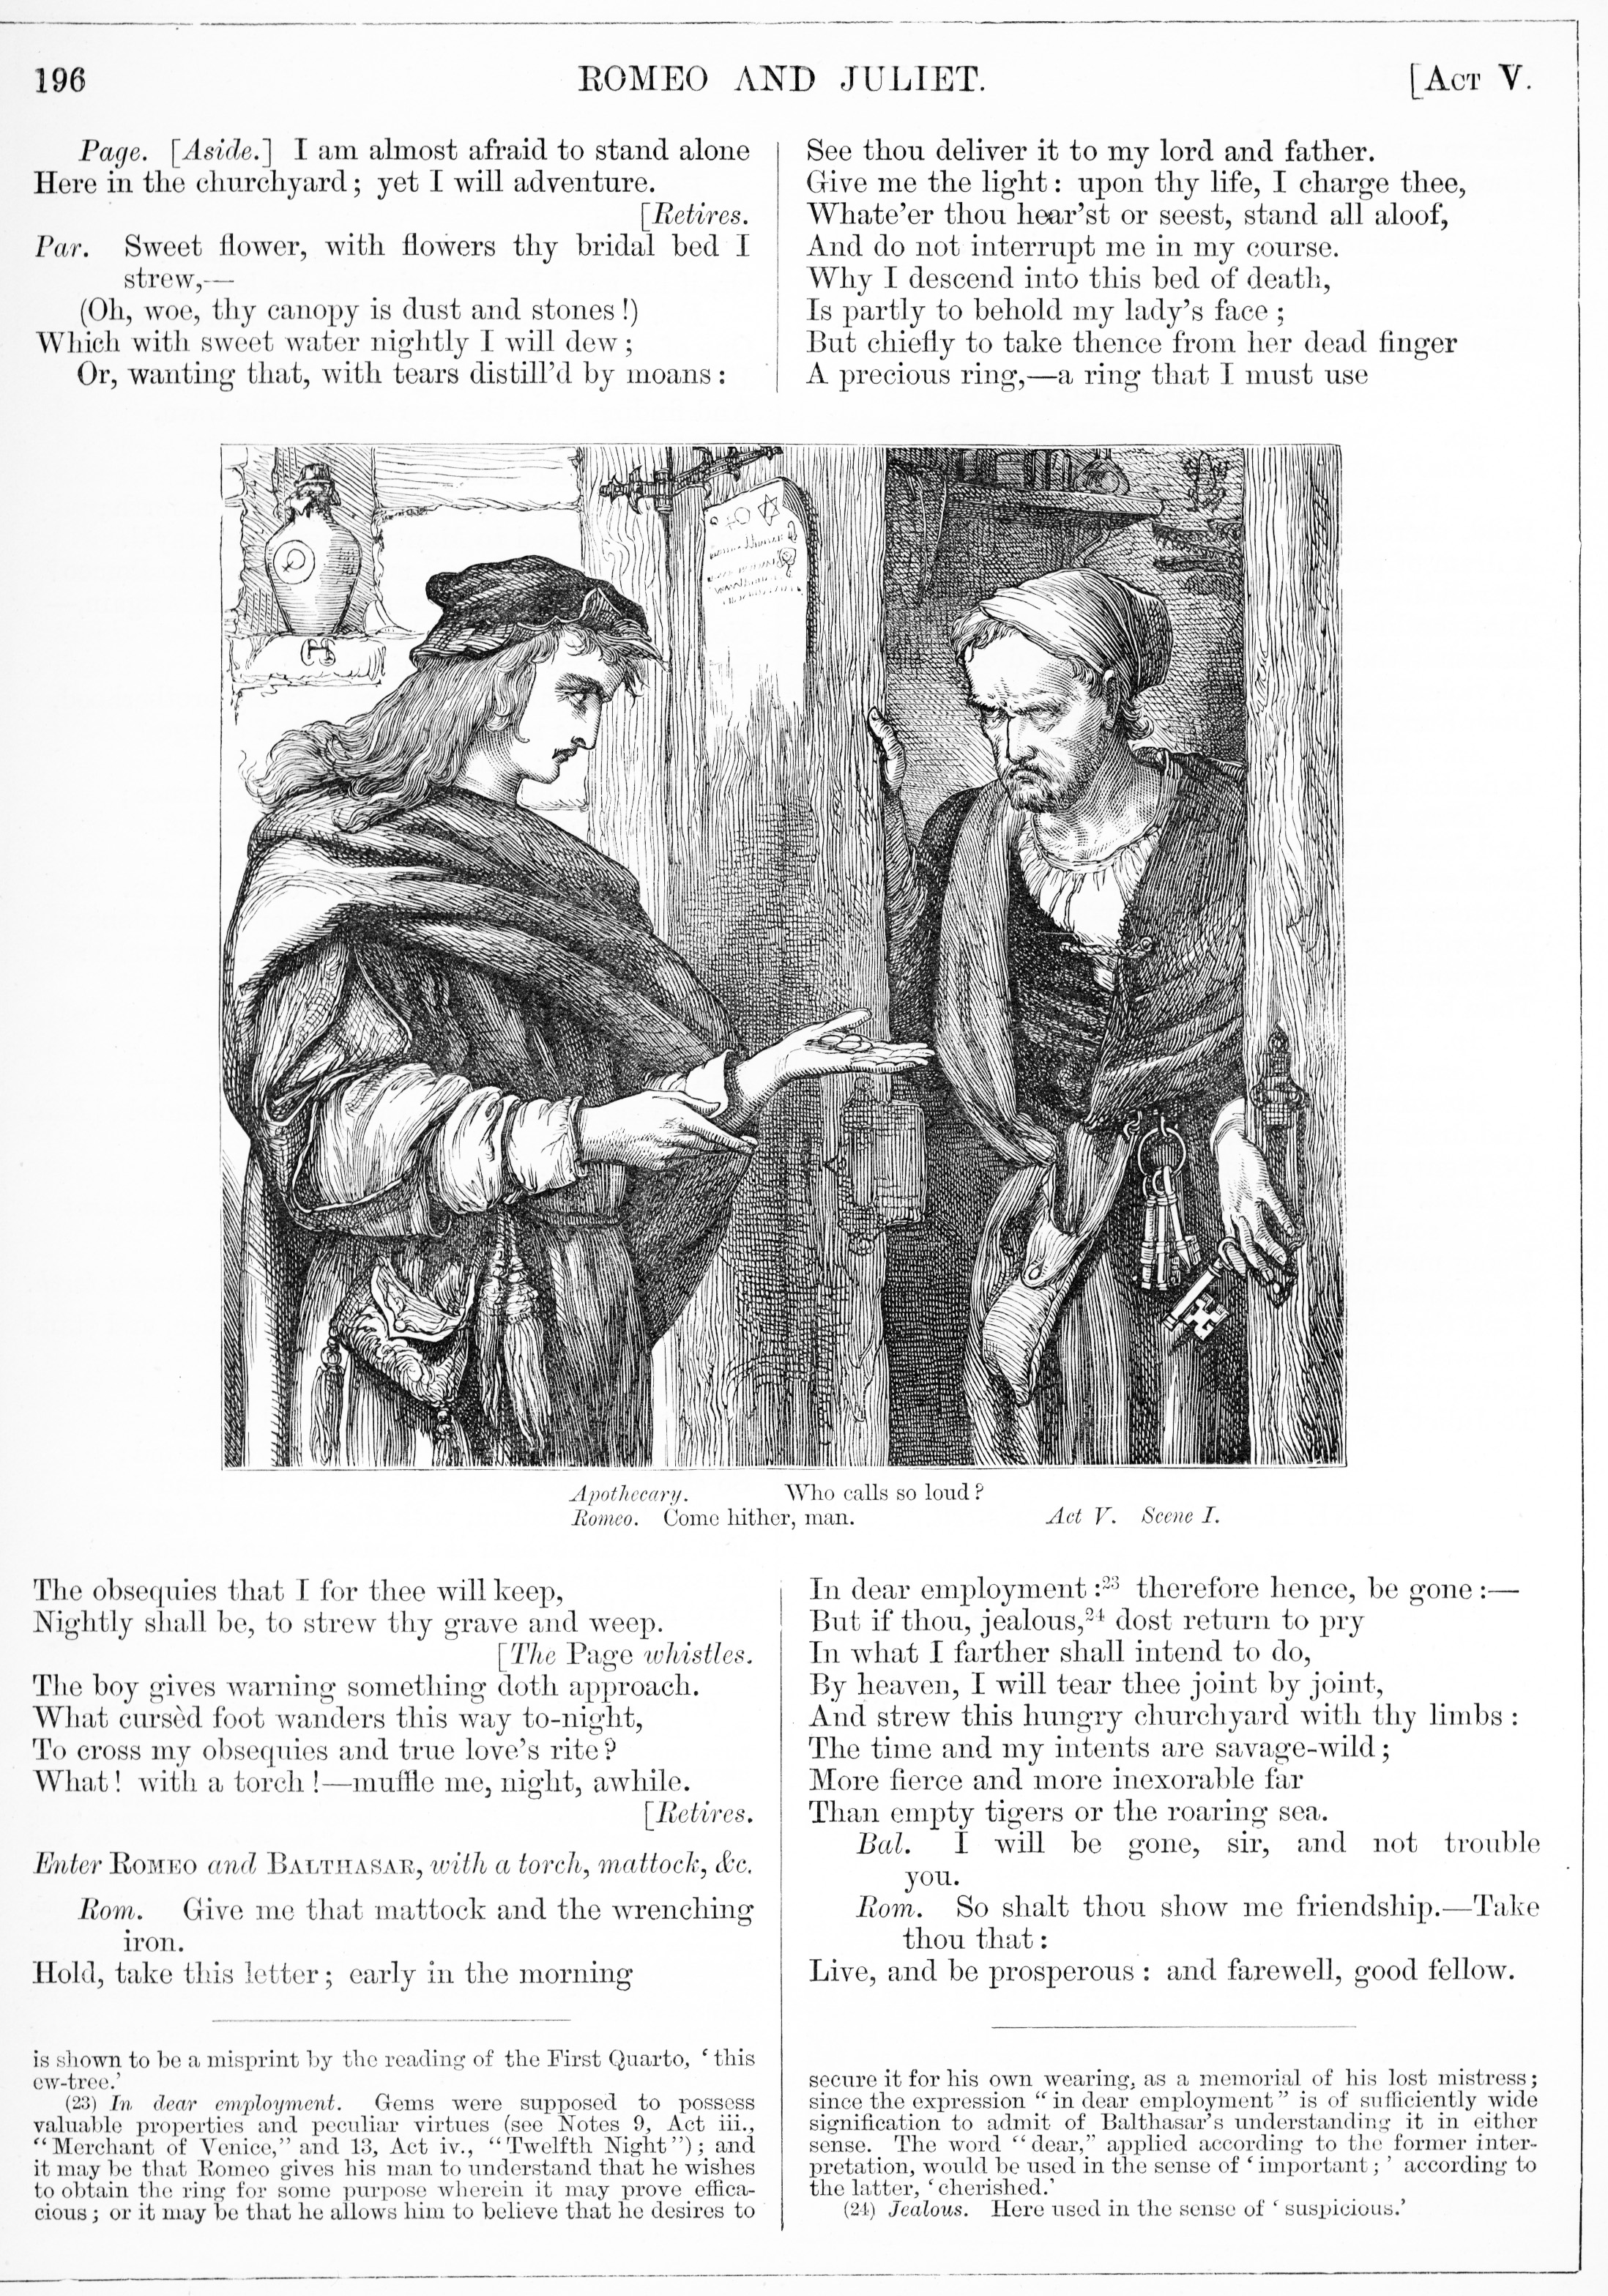 H. C. Selous, Romeo and Juliet, Illustration #16